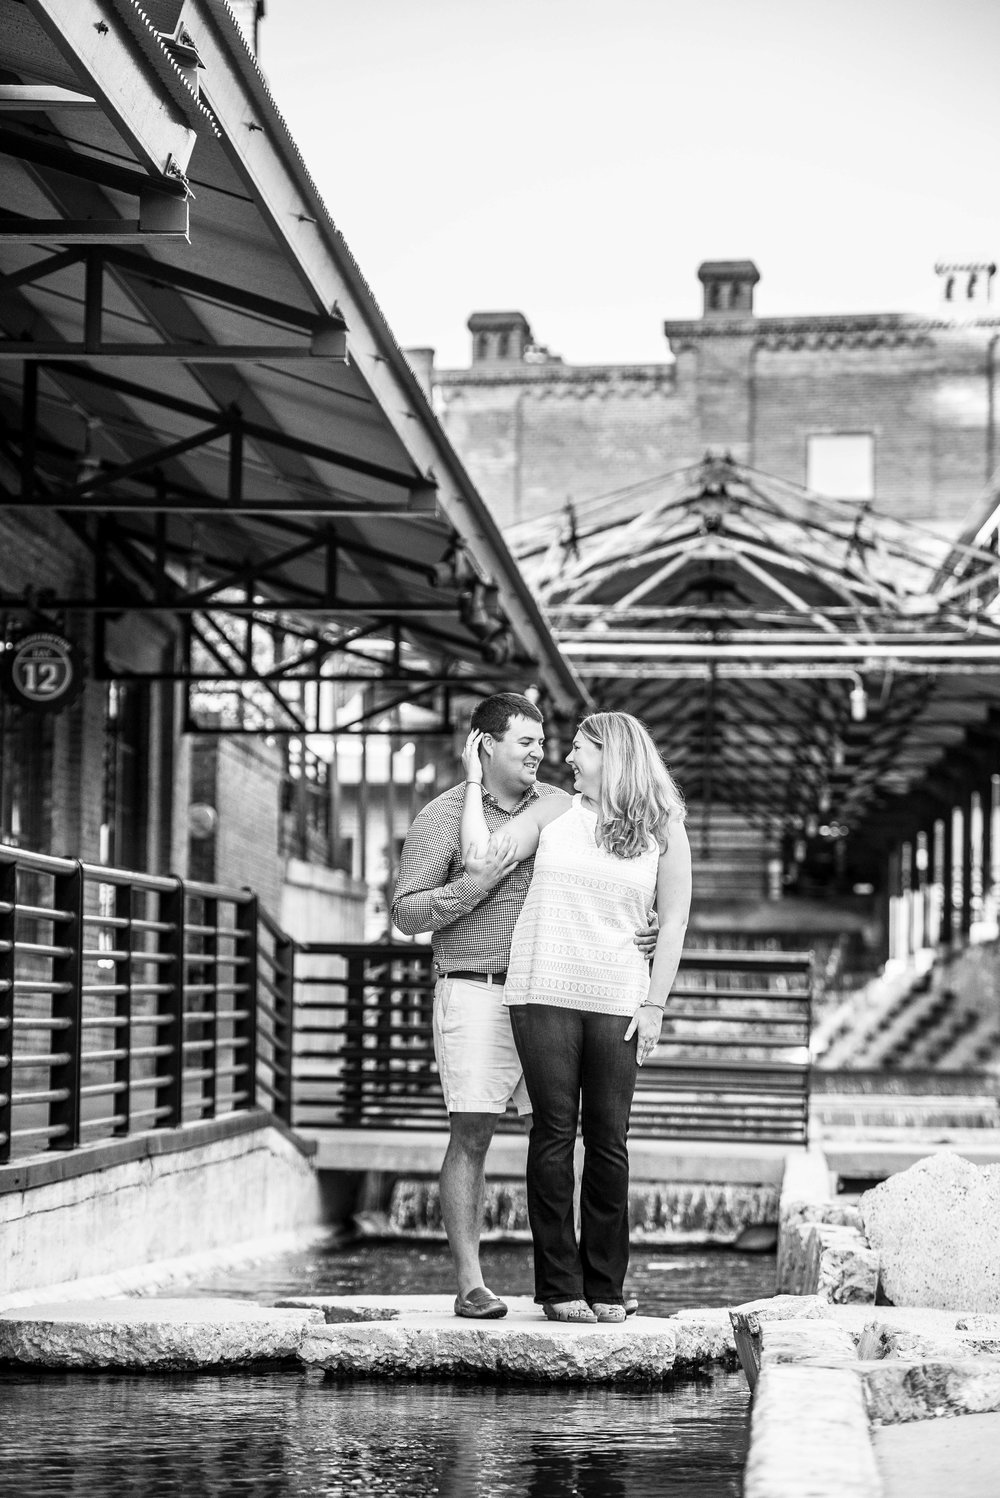 American Tabacco Campus - American Tabacco Company - Durham NC - Durham Engagement Session - NC Wedding Photographer - Engagement Session - NC Engagement - NC Weddings - Yasmin Leonard PHotography-5.jpg